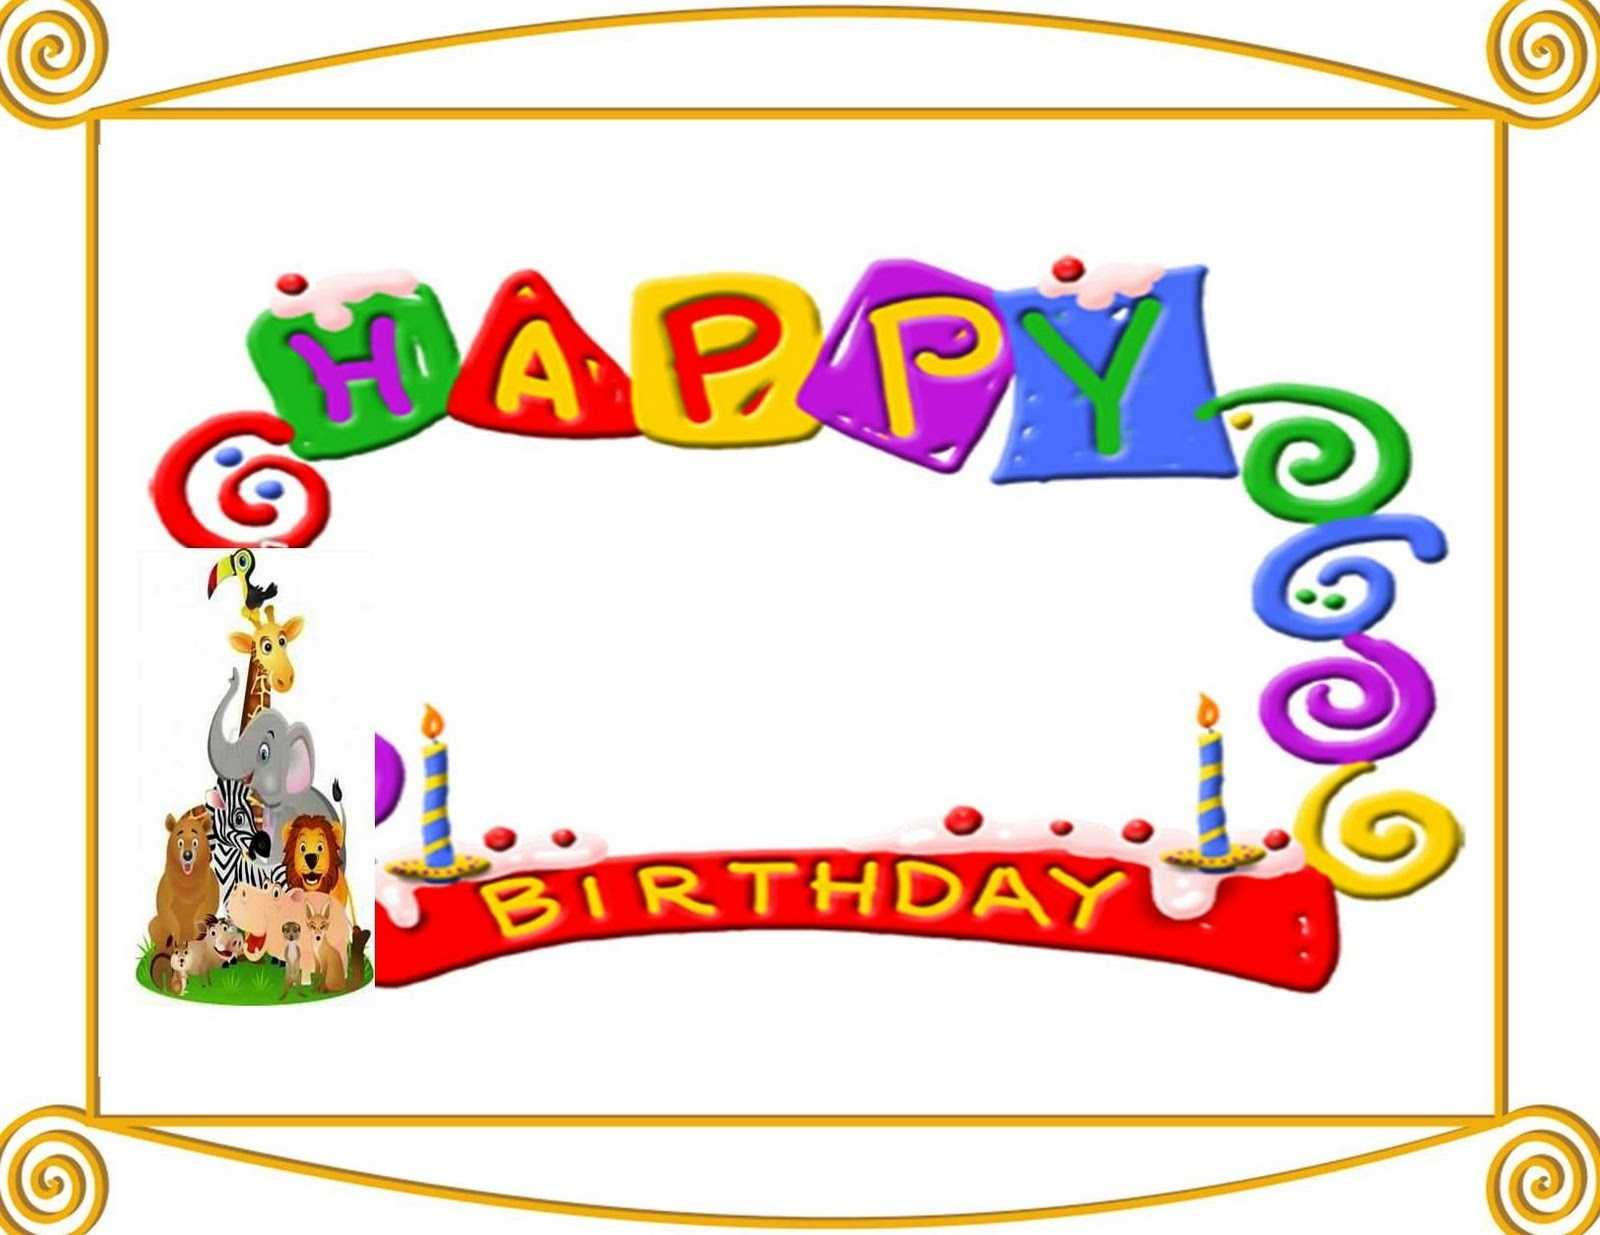 happy birthday card clipart ; birthday-card-cliparts-free-download-clip-art-free-clip-art-happy-birthday-card-clipart